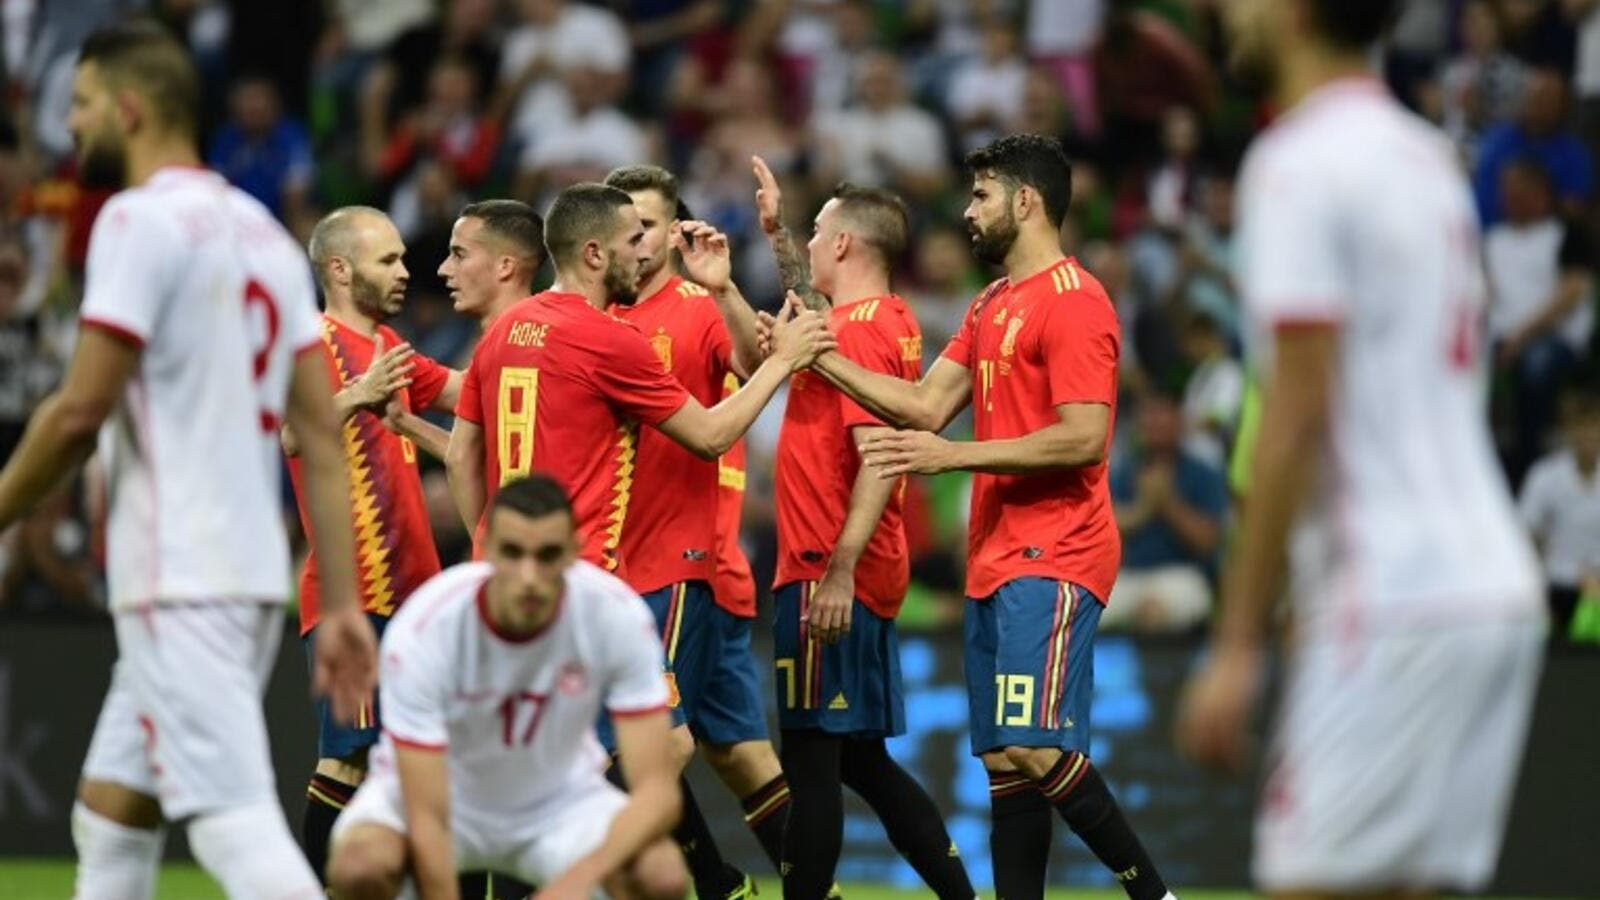 Spain's forward Iago Aspas (2nd R) celebrates with team mates after scoring a goal during the friendly football match between Spain and Tunisia at Krasnodar's stadium on June 9, 2018.